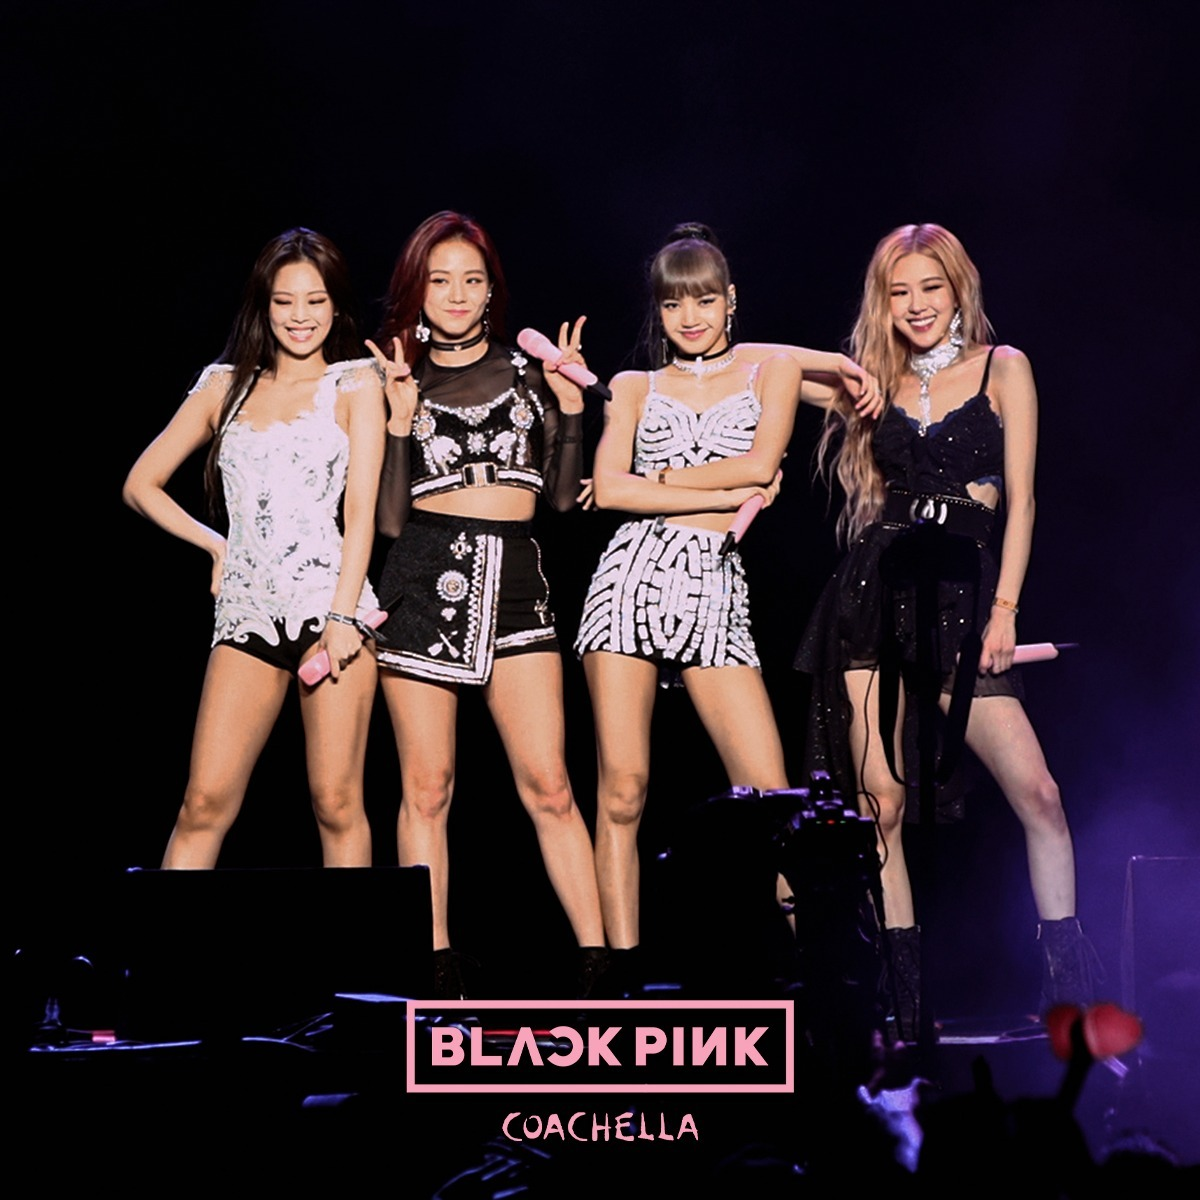 Playing with Fire / LIVE IN COACHELLA / BLACKPINK